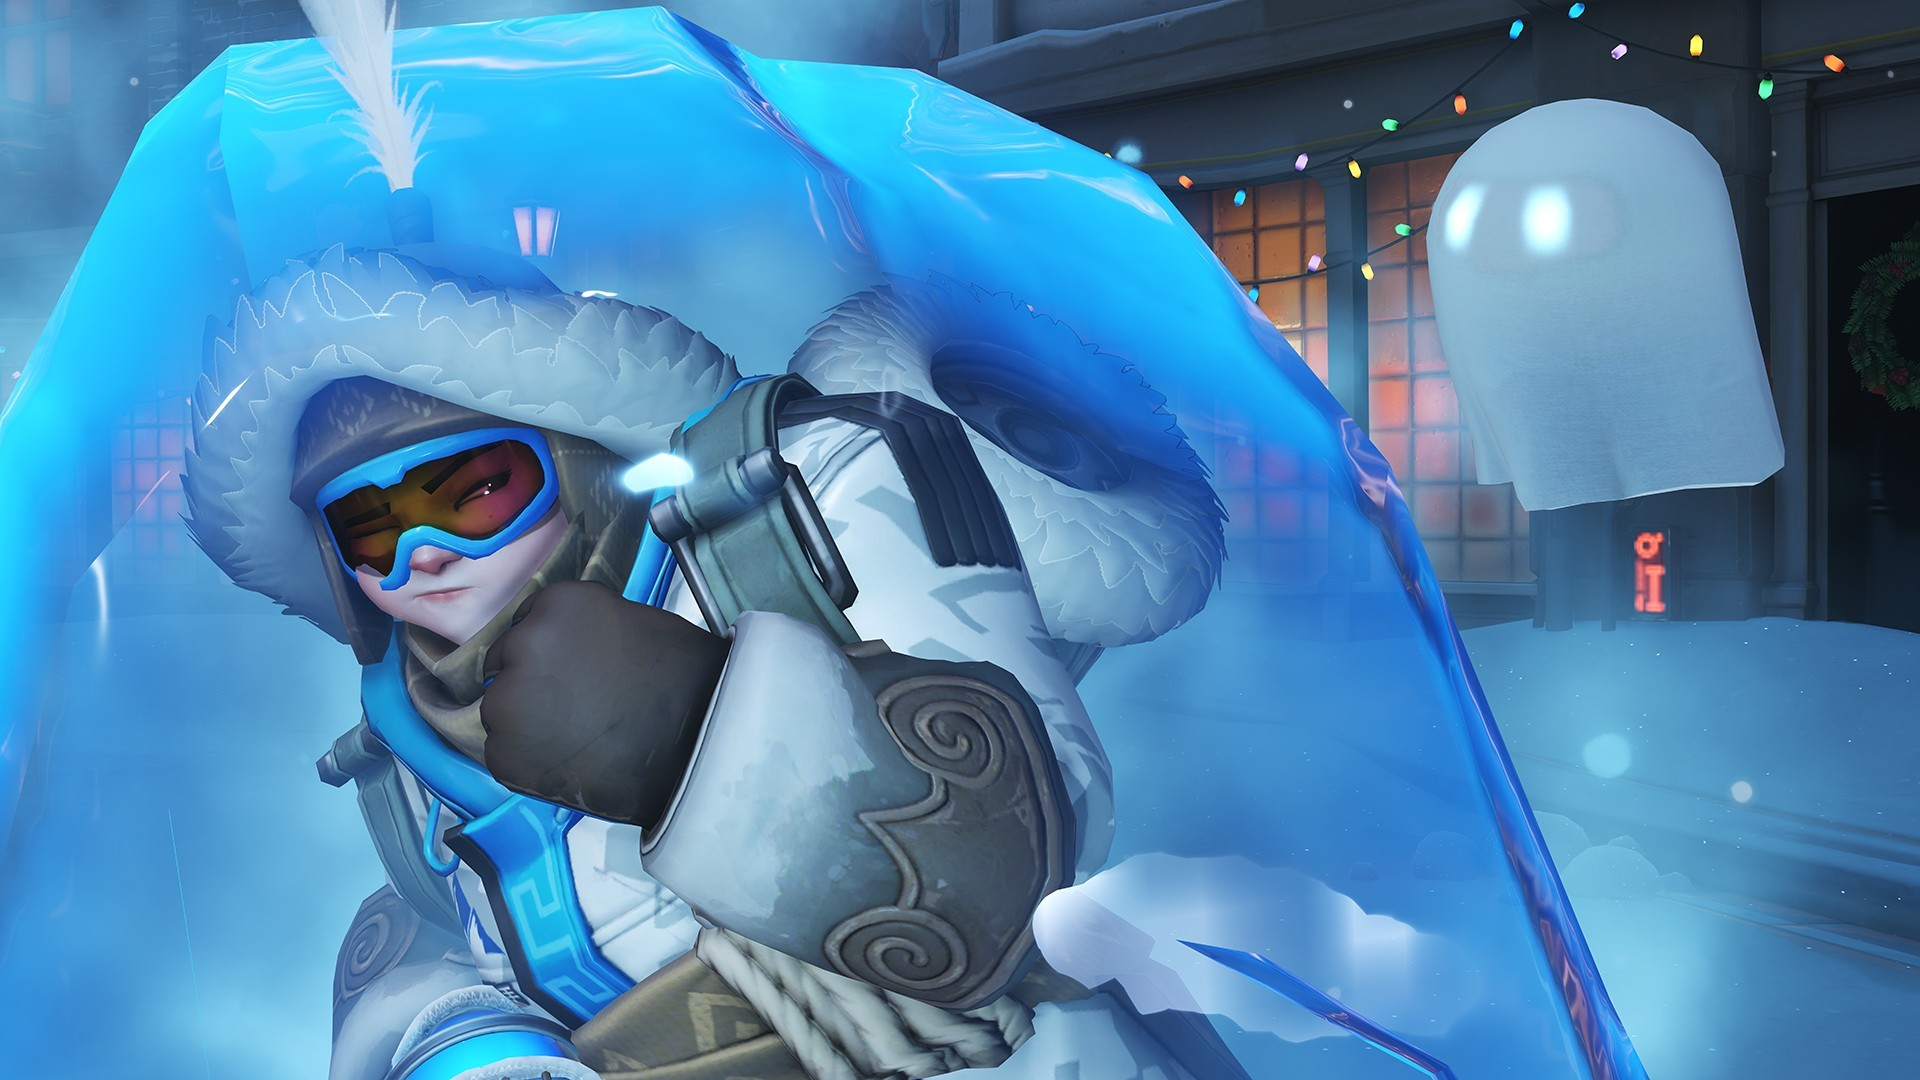 Overwatch Mei Wallpaper Download Free Wallpapers For Desktop And Mobile Devices In Any